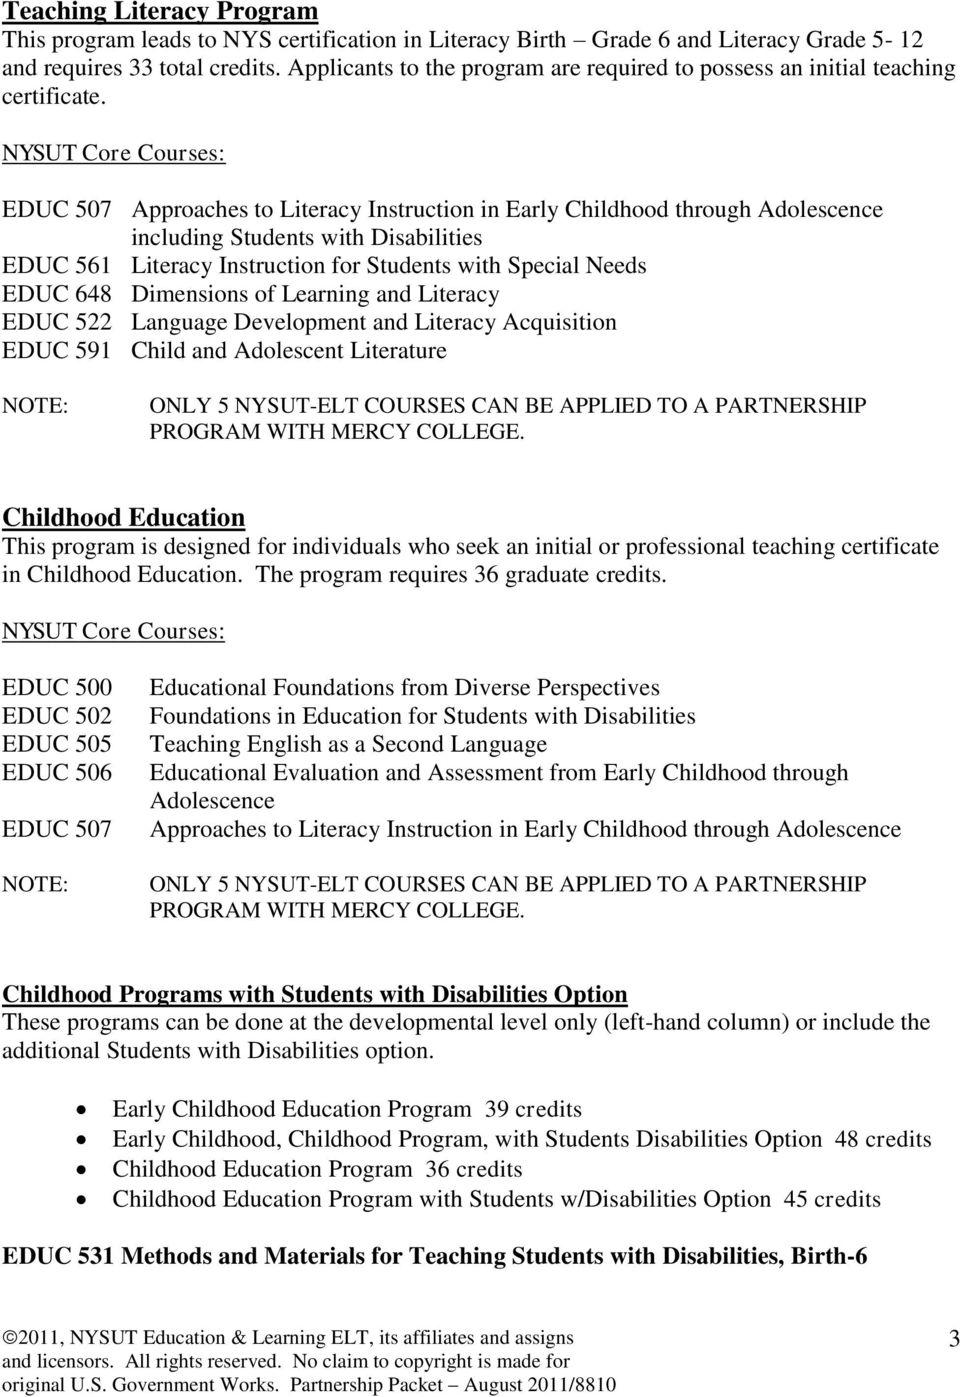 EDUC 507 Approaches to Literacy Instruction in Early Childhood through including Students with Disabilities EDUC 561 Literacy Instruction for Students with Special Needs EDUC 648 Dimensions of